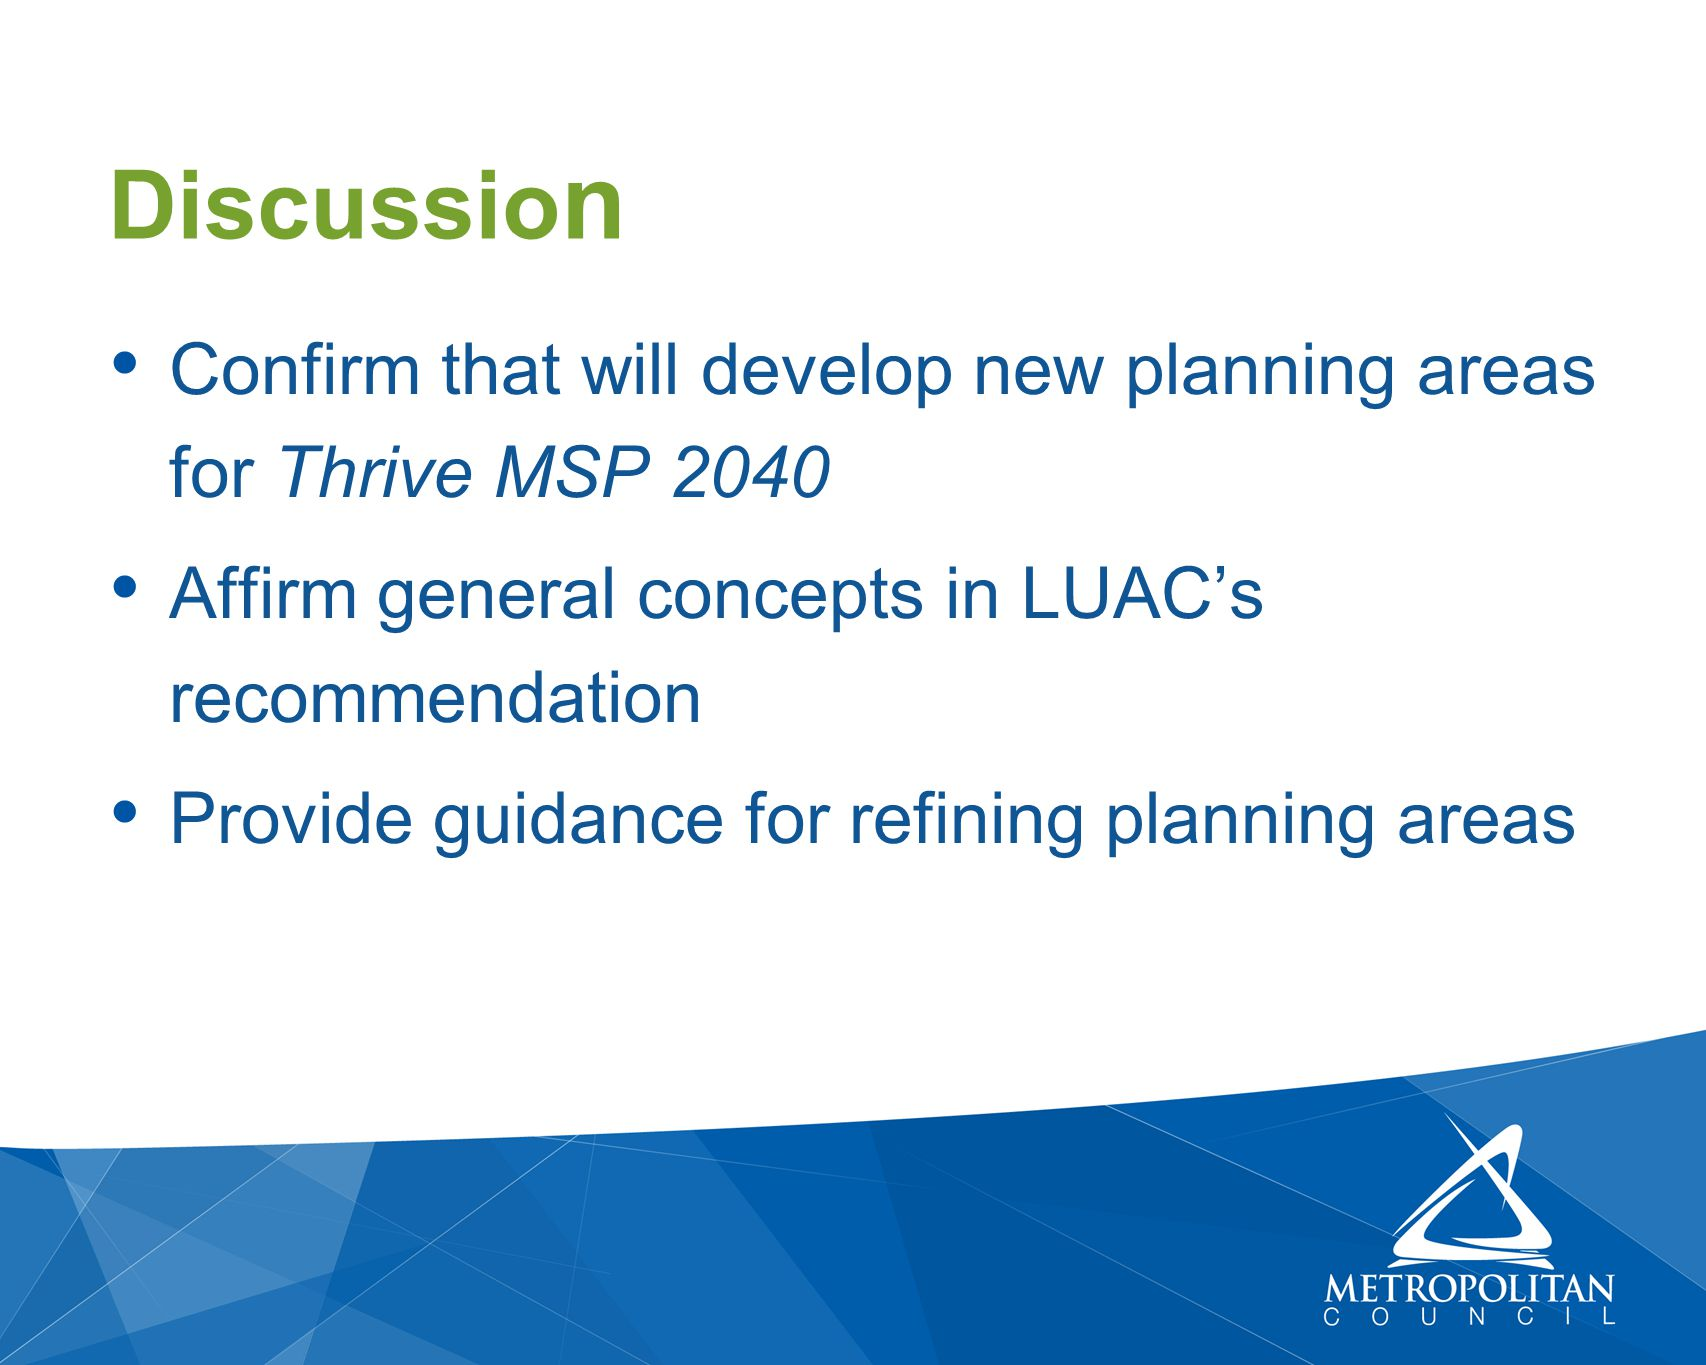 Confirm that will develop new planning areas for Thrive MSP 2040 Affirm general concepts in LUAC's recommendation Provide guidance for refining planni